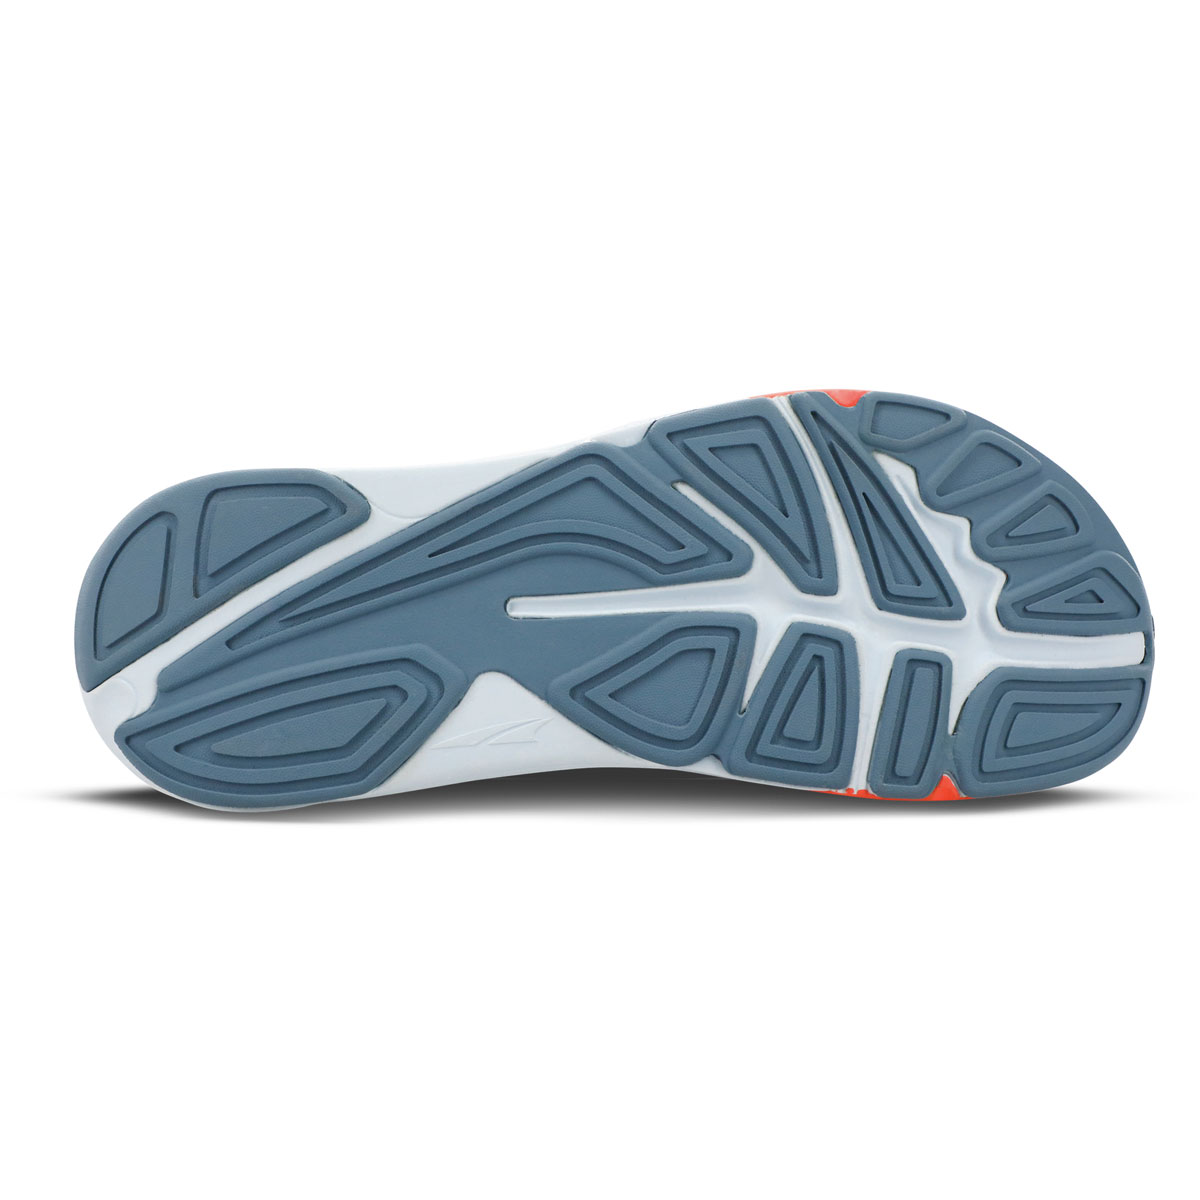 Women's Altra Paradigm 5 Running Shoe - Color: Gray/Coral - Size: 5.5 - Width: Regular, Gray/Coral, large, image 4